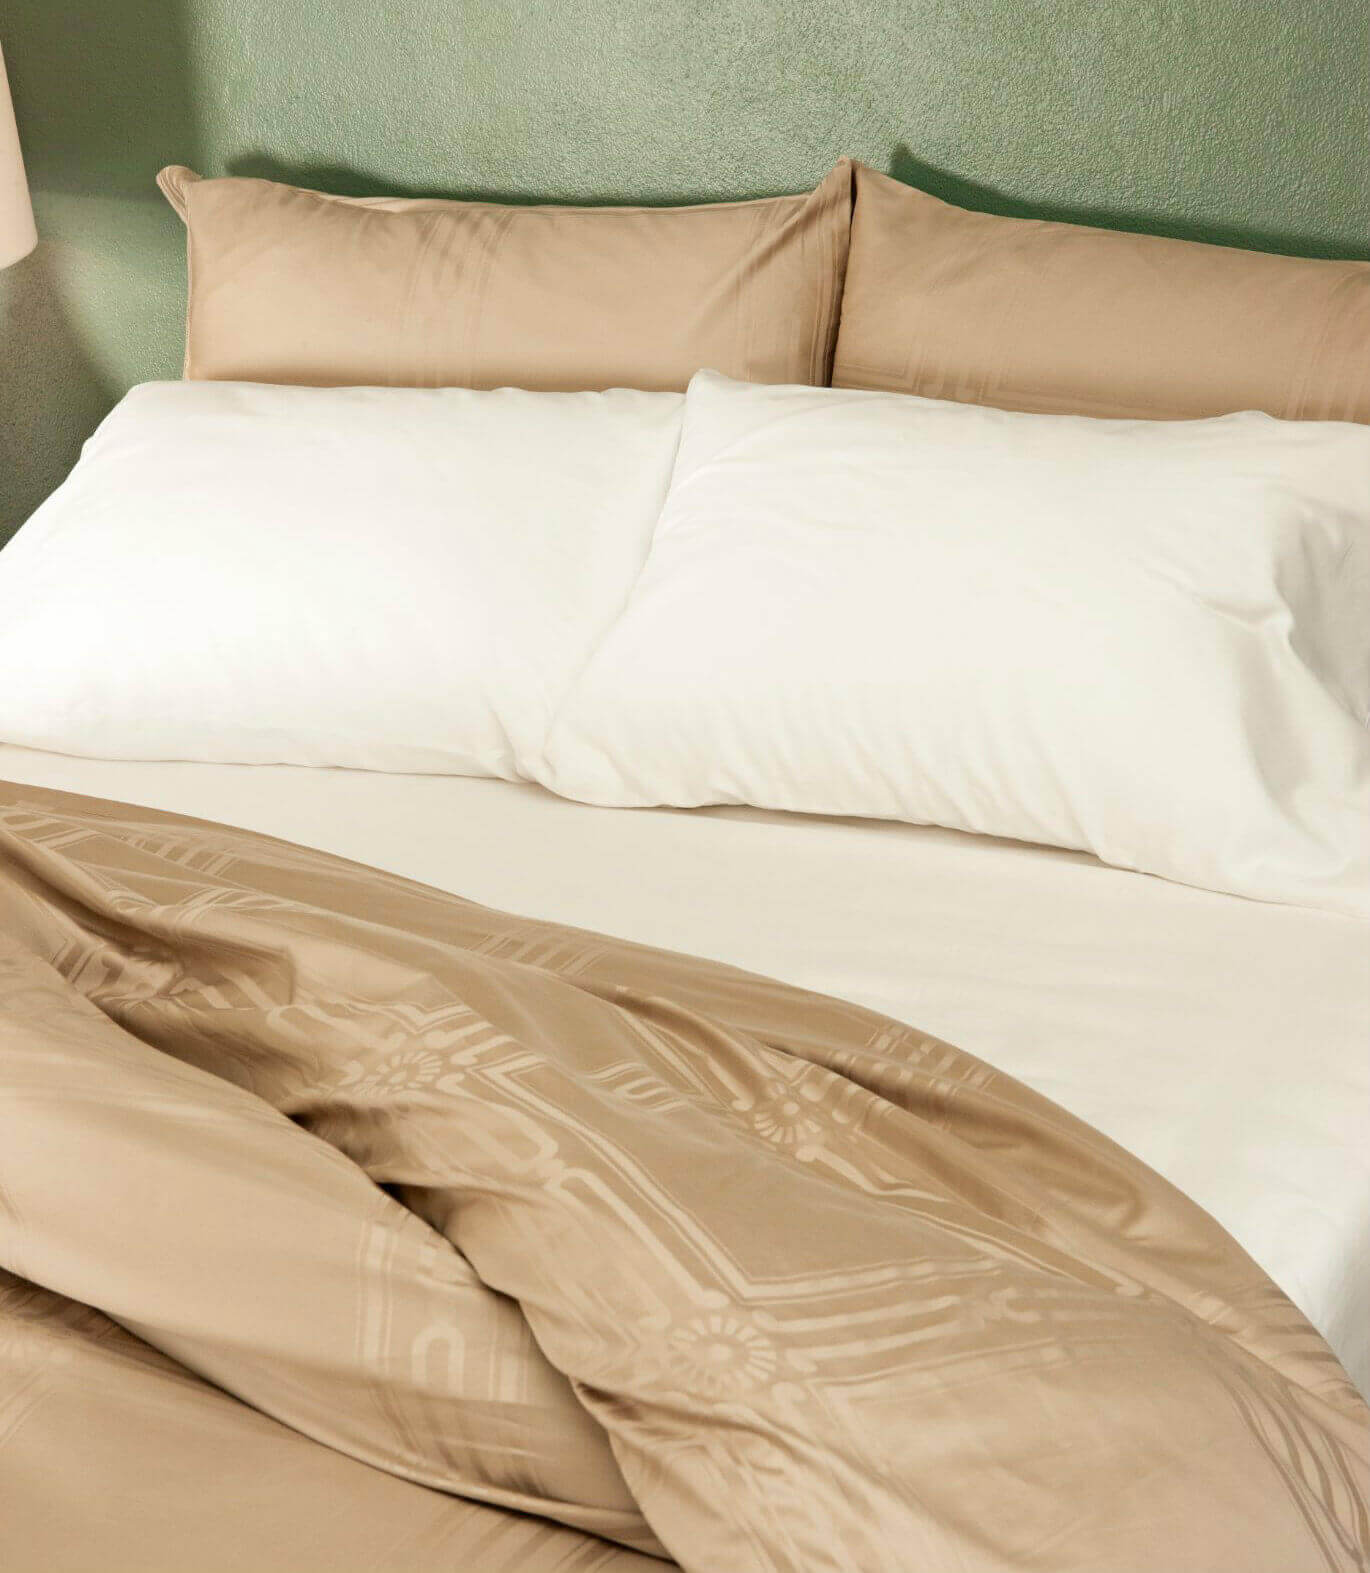 marialma's beige and white bed sheets in a green bedroom